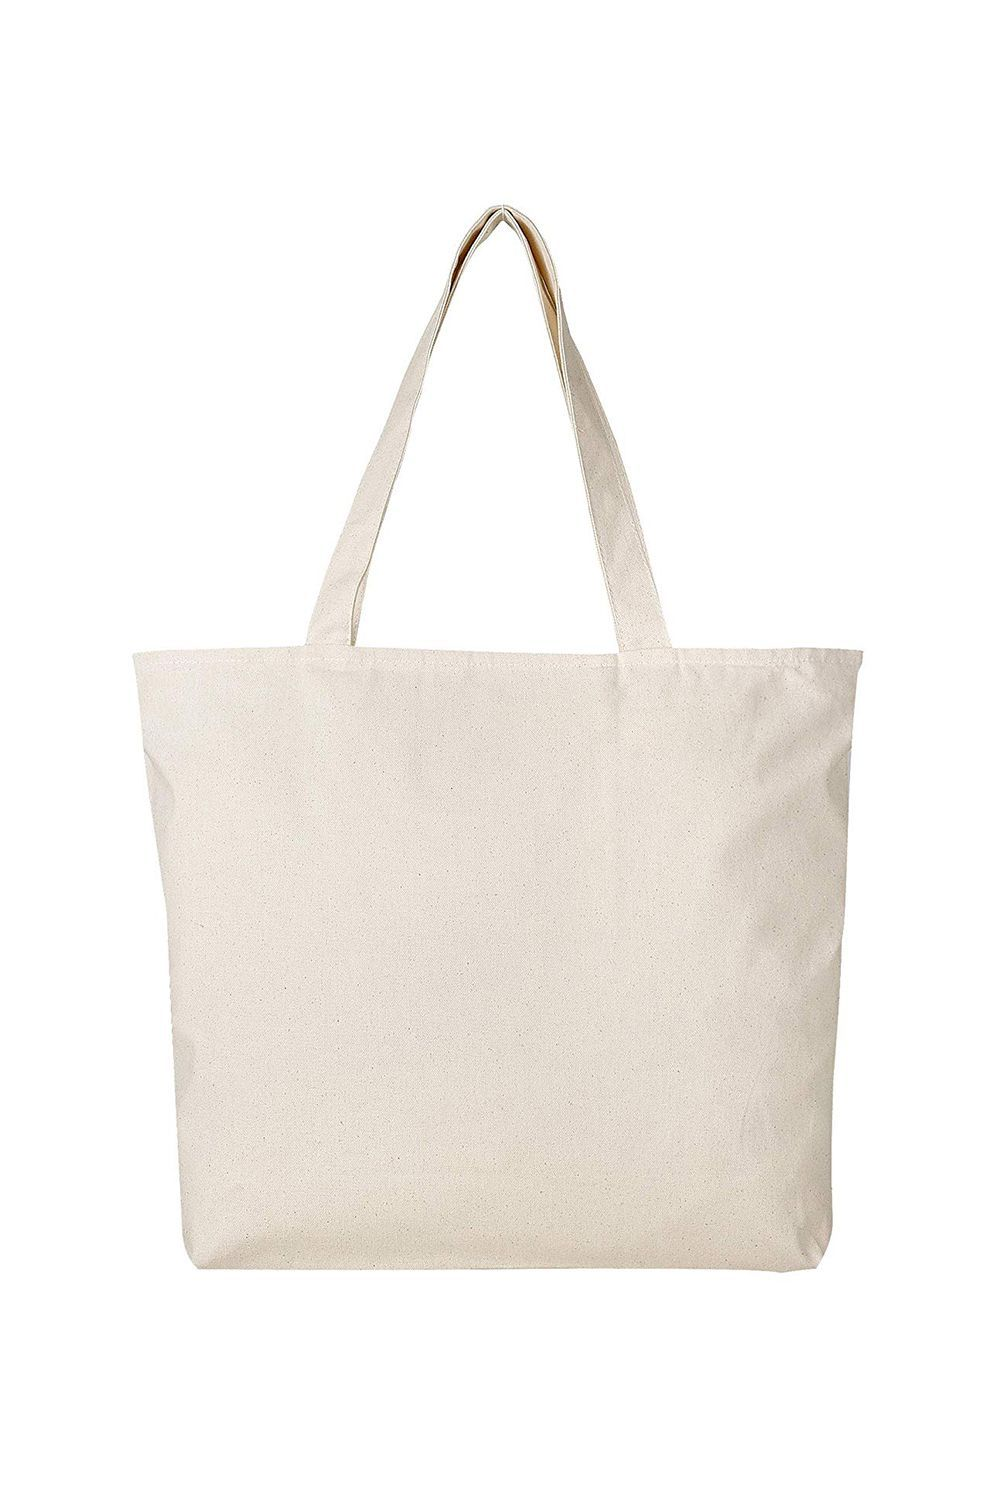 Best for Tossing Everything In Reusable Canvas Tote Bags BagzDepot $19.99 SHOP IT Multi-purposes totes are a win-win in my book. This one can easily hold your groceries from the farmer's market and with a quick wash, turn into a simple tote bag for work.